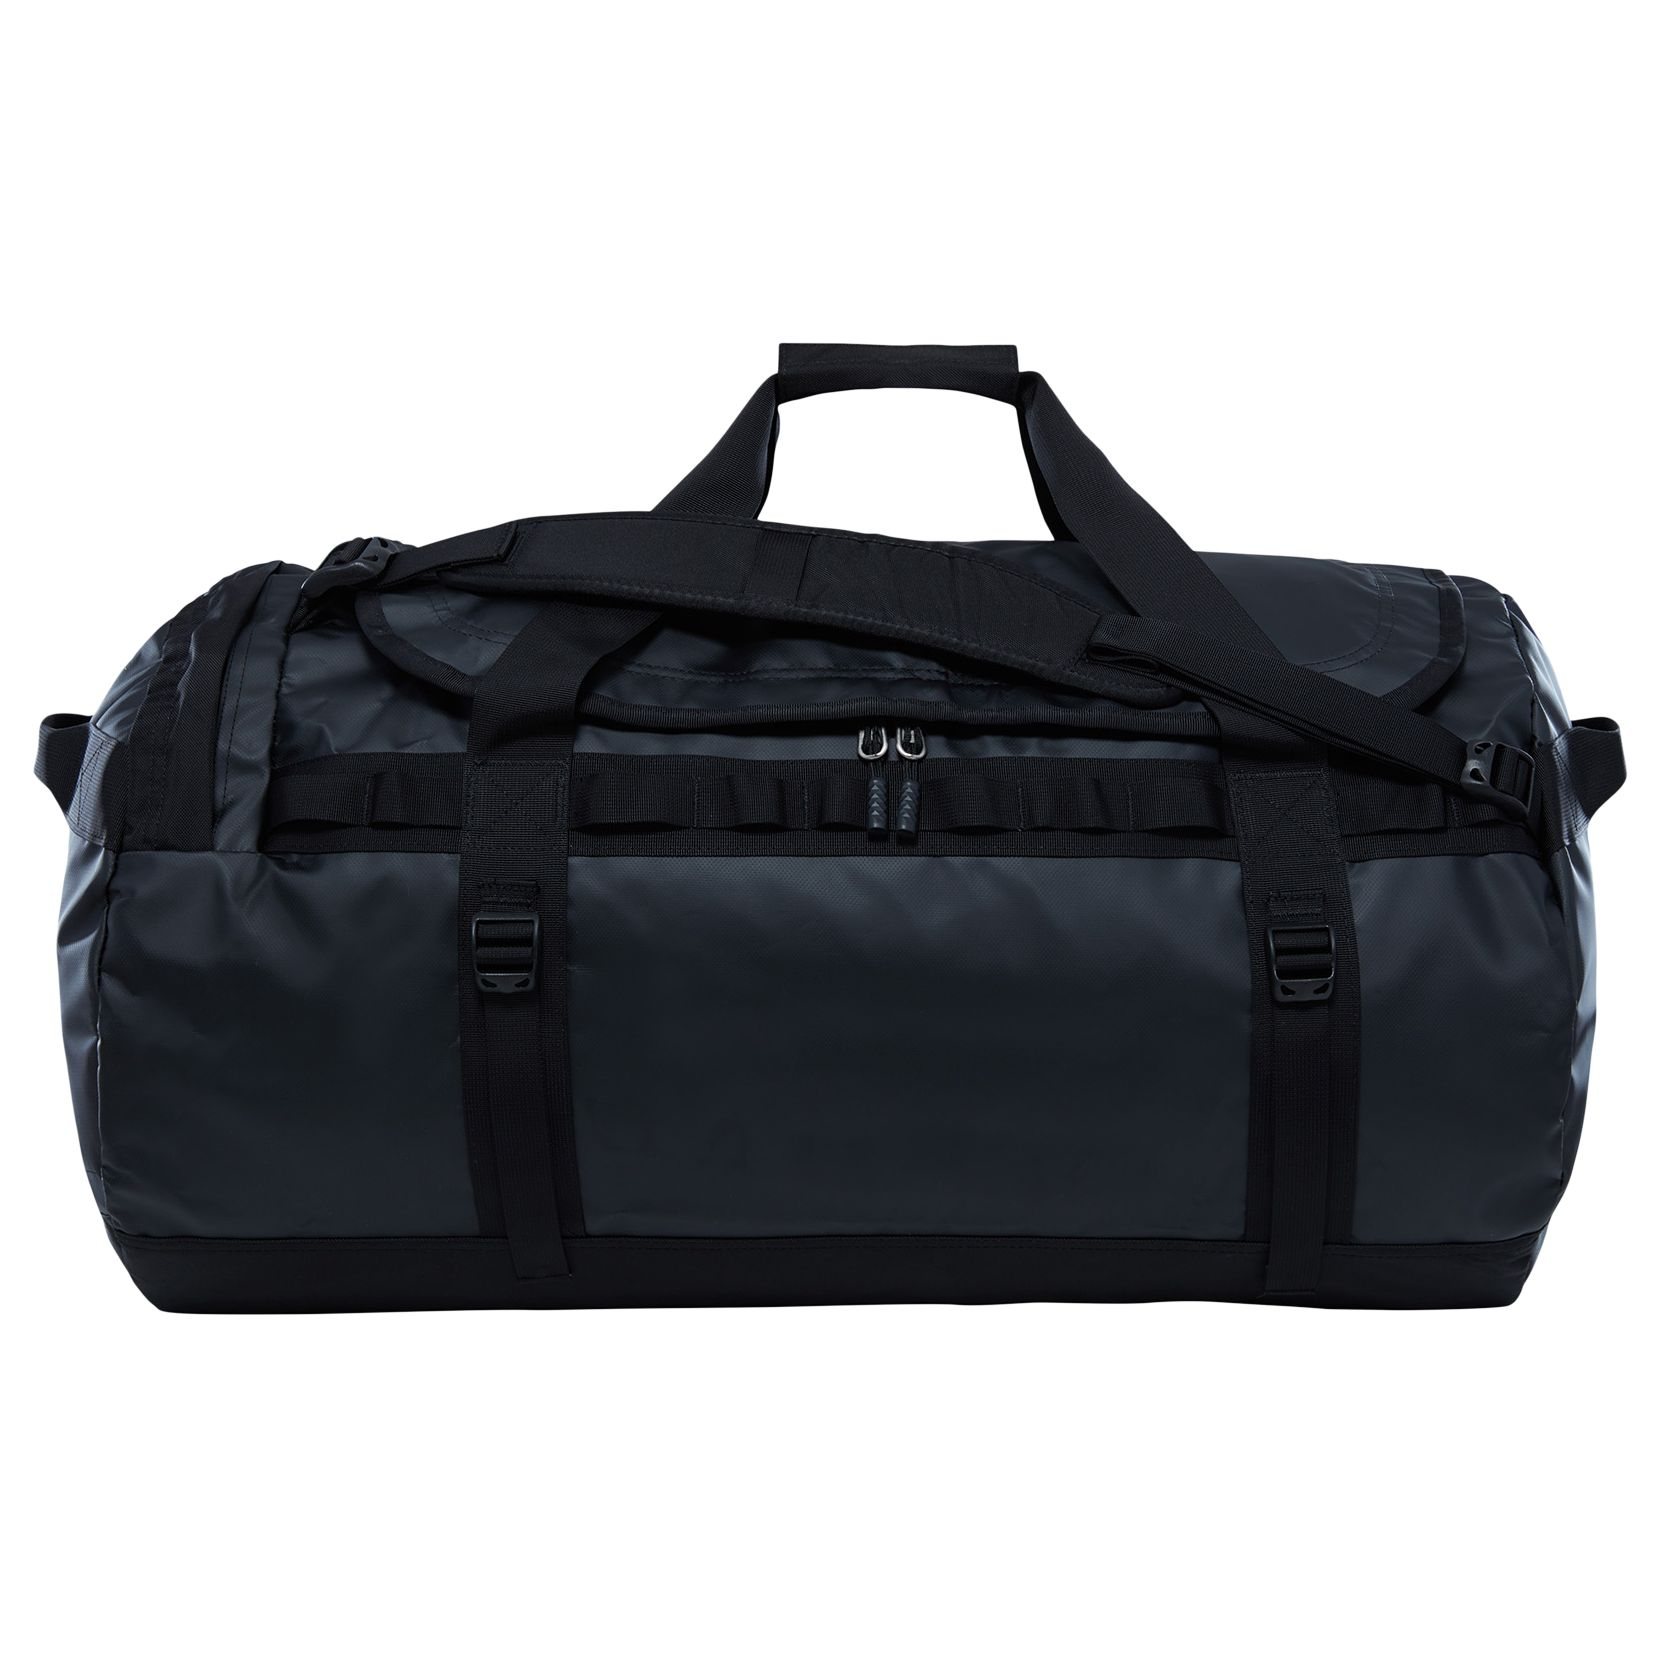 The North Face The North Face Base Camp Duffle Bag, Large, Black